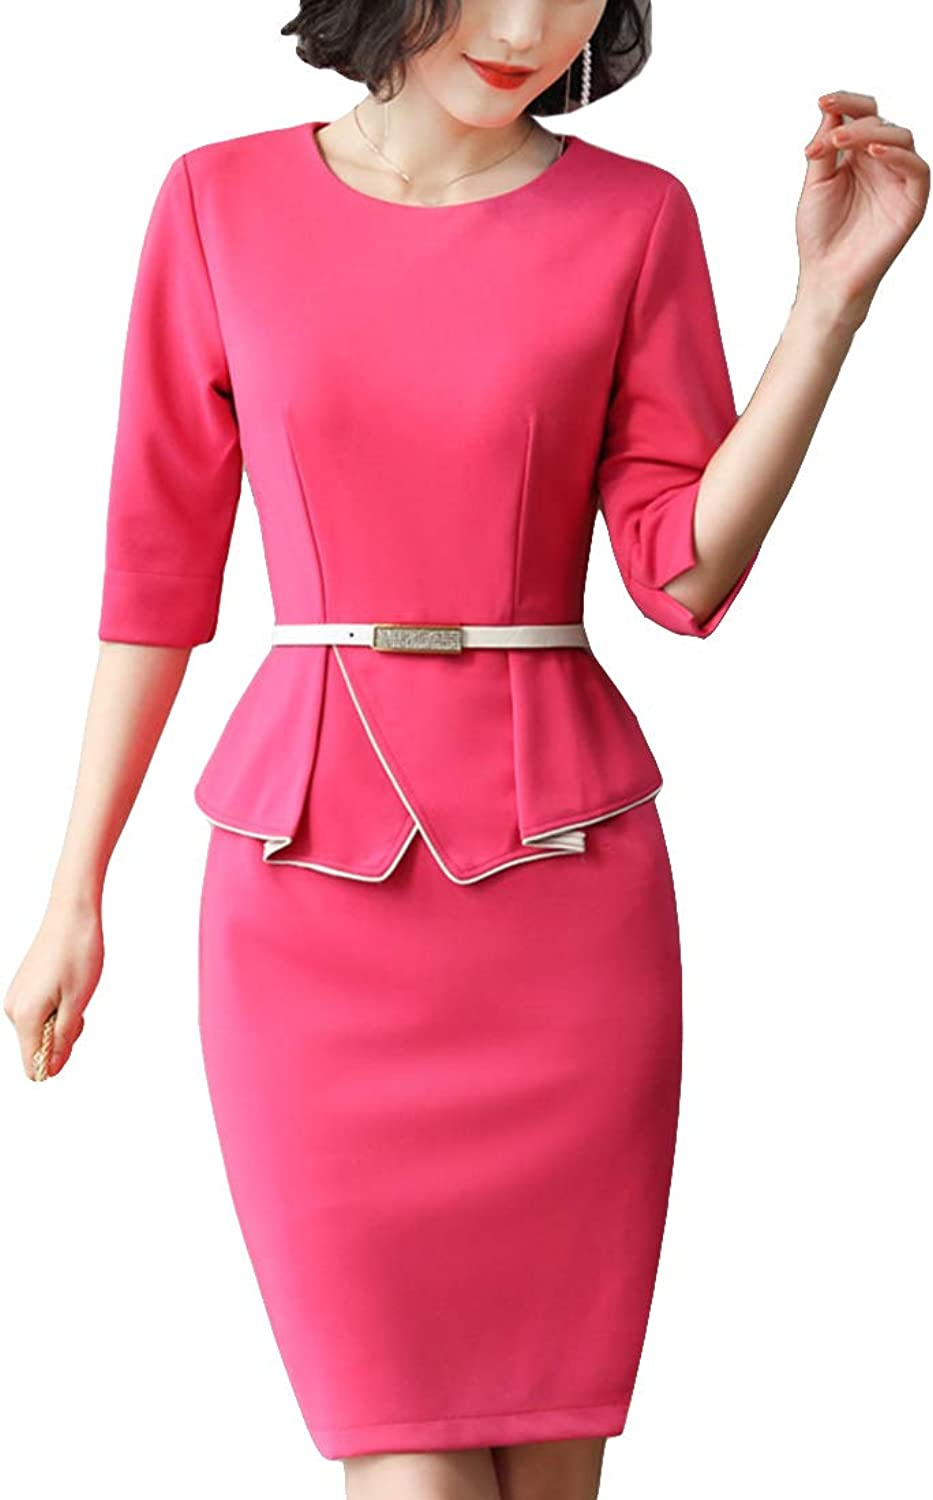 MFrannie Women Candy color Sophisticated Dress Suit Elegant Office Business Workwear